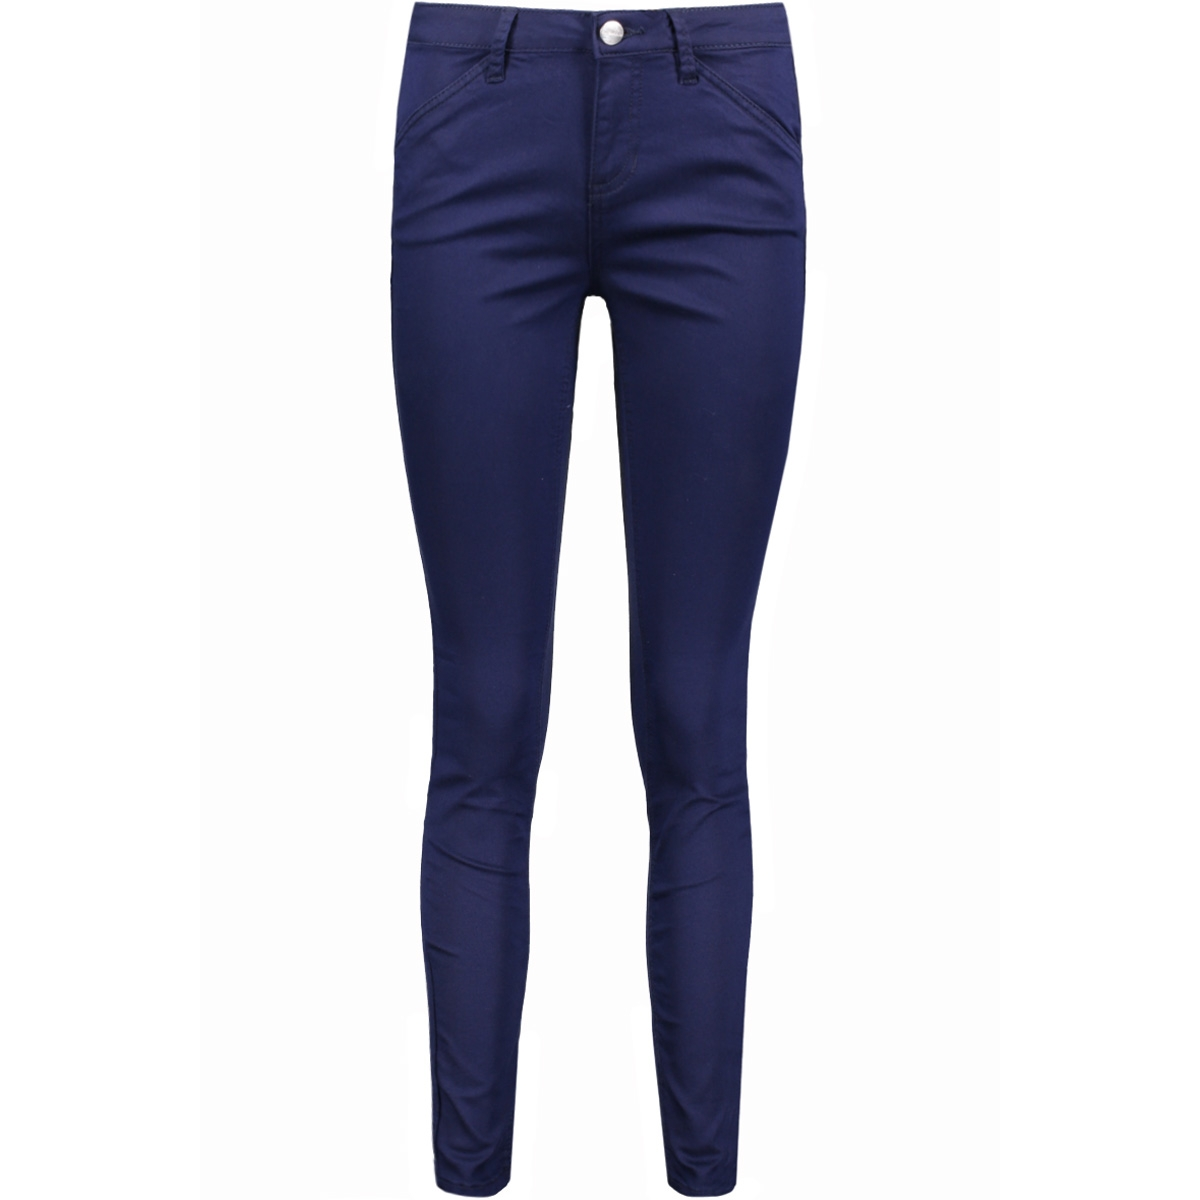 6404852.00.75 tom tailor broek 6990